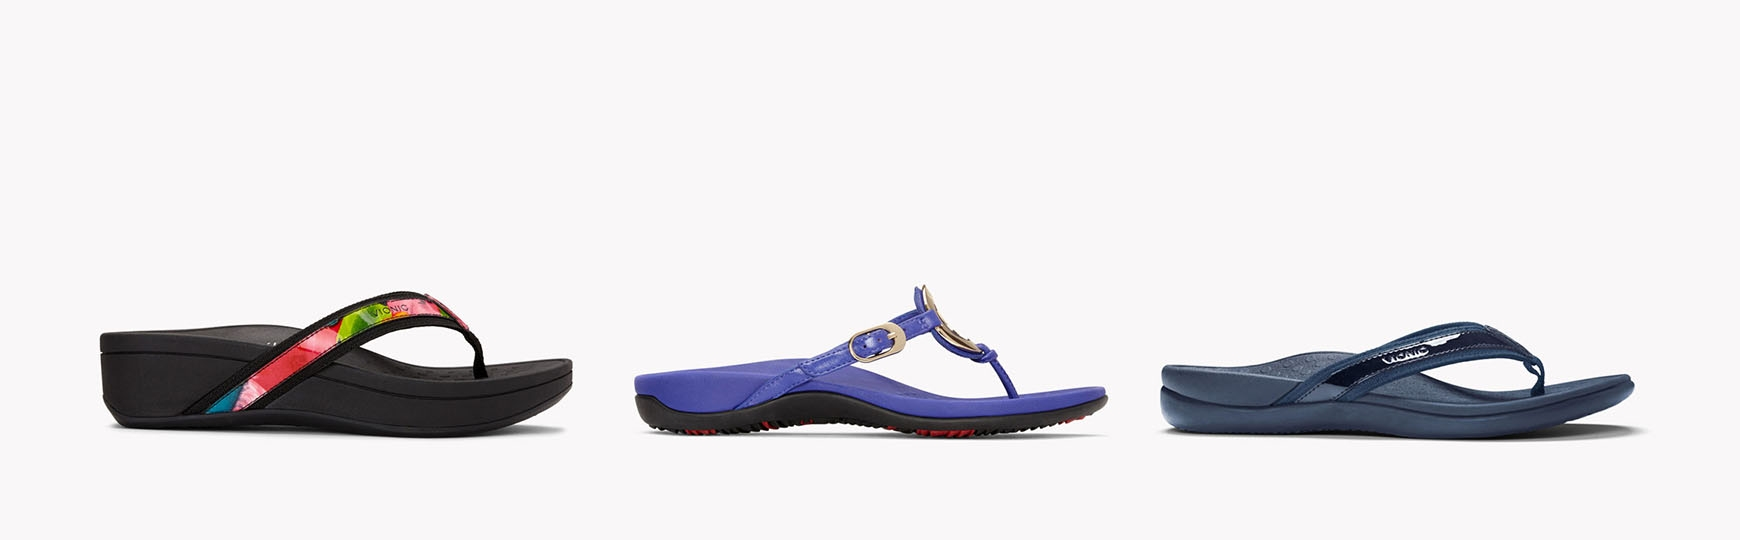 b9d726bb8 Comfortable Flip Flops for Women and Men